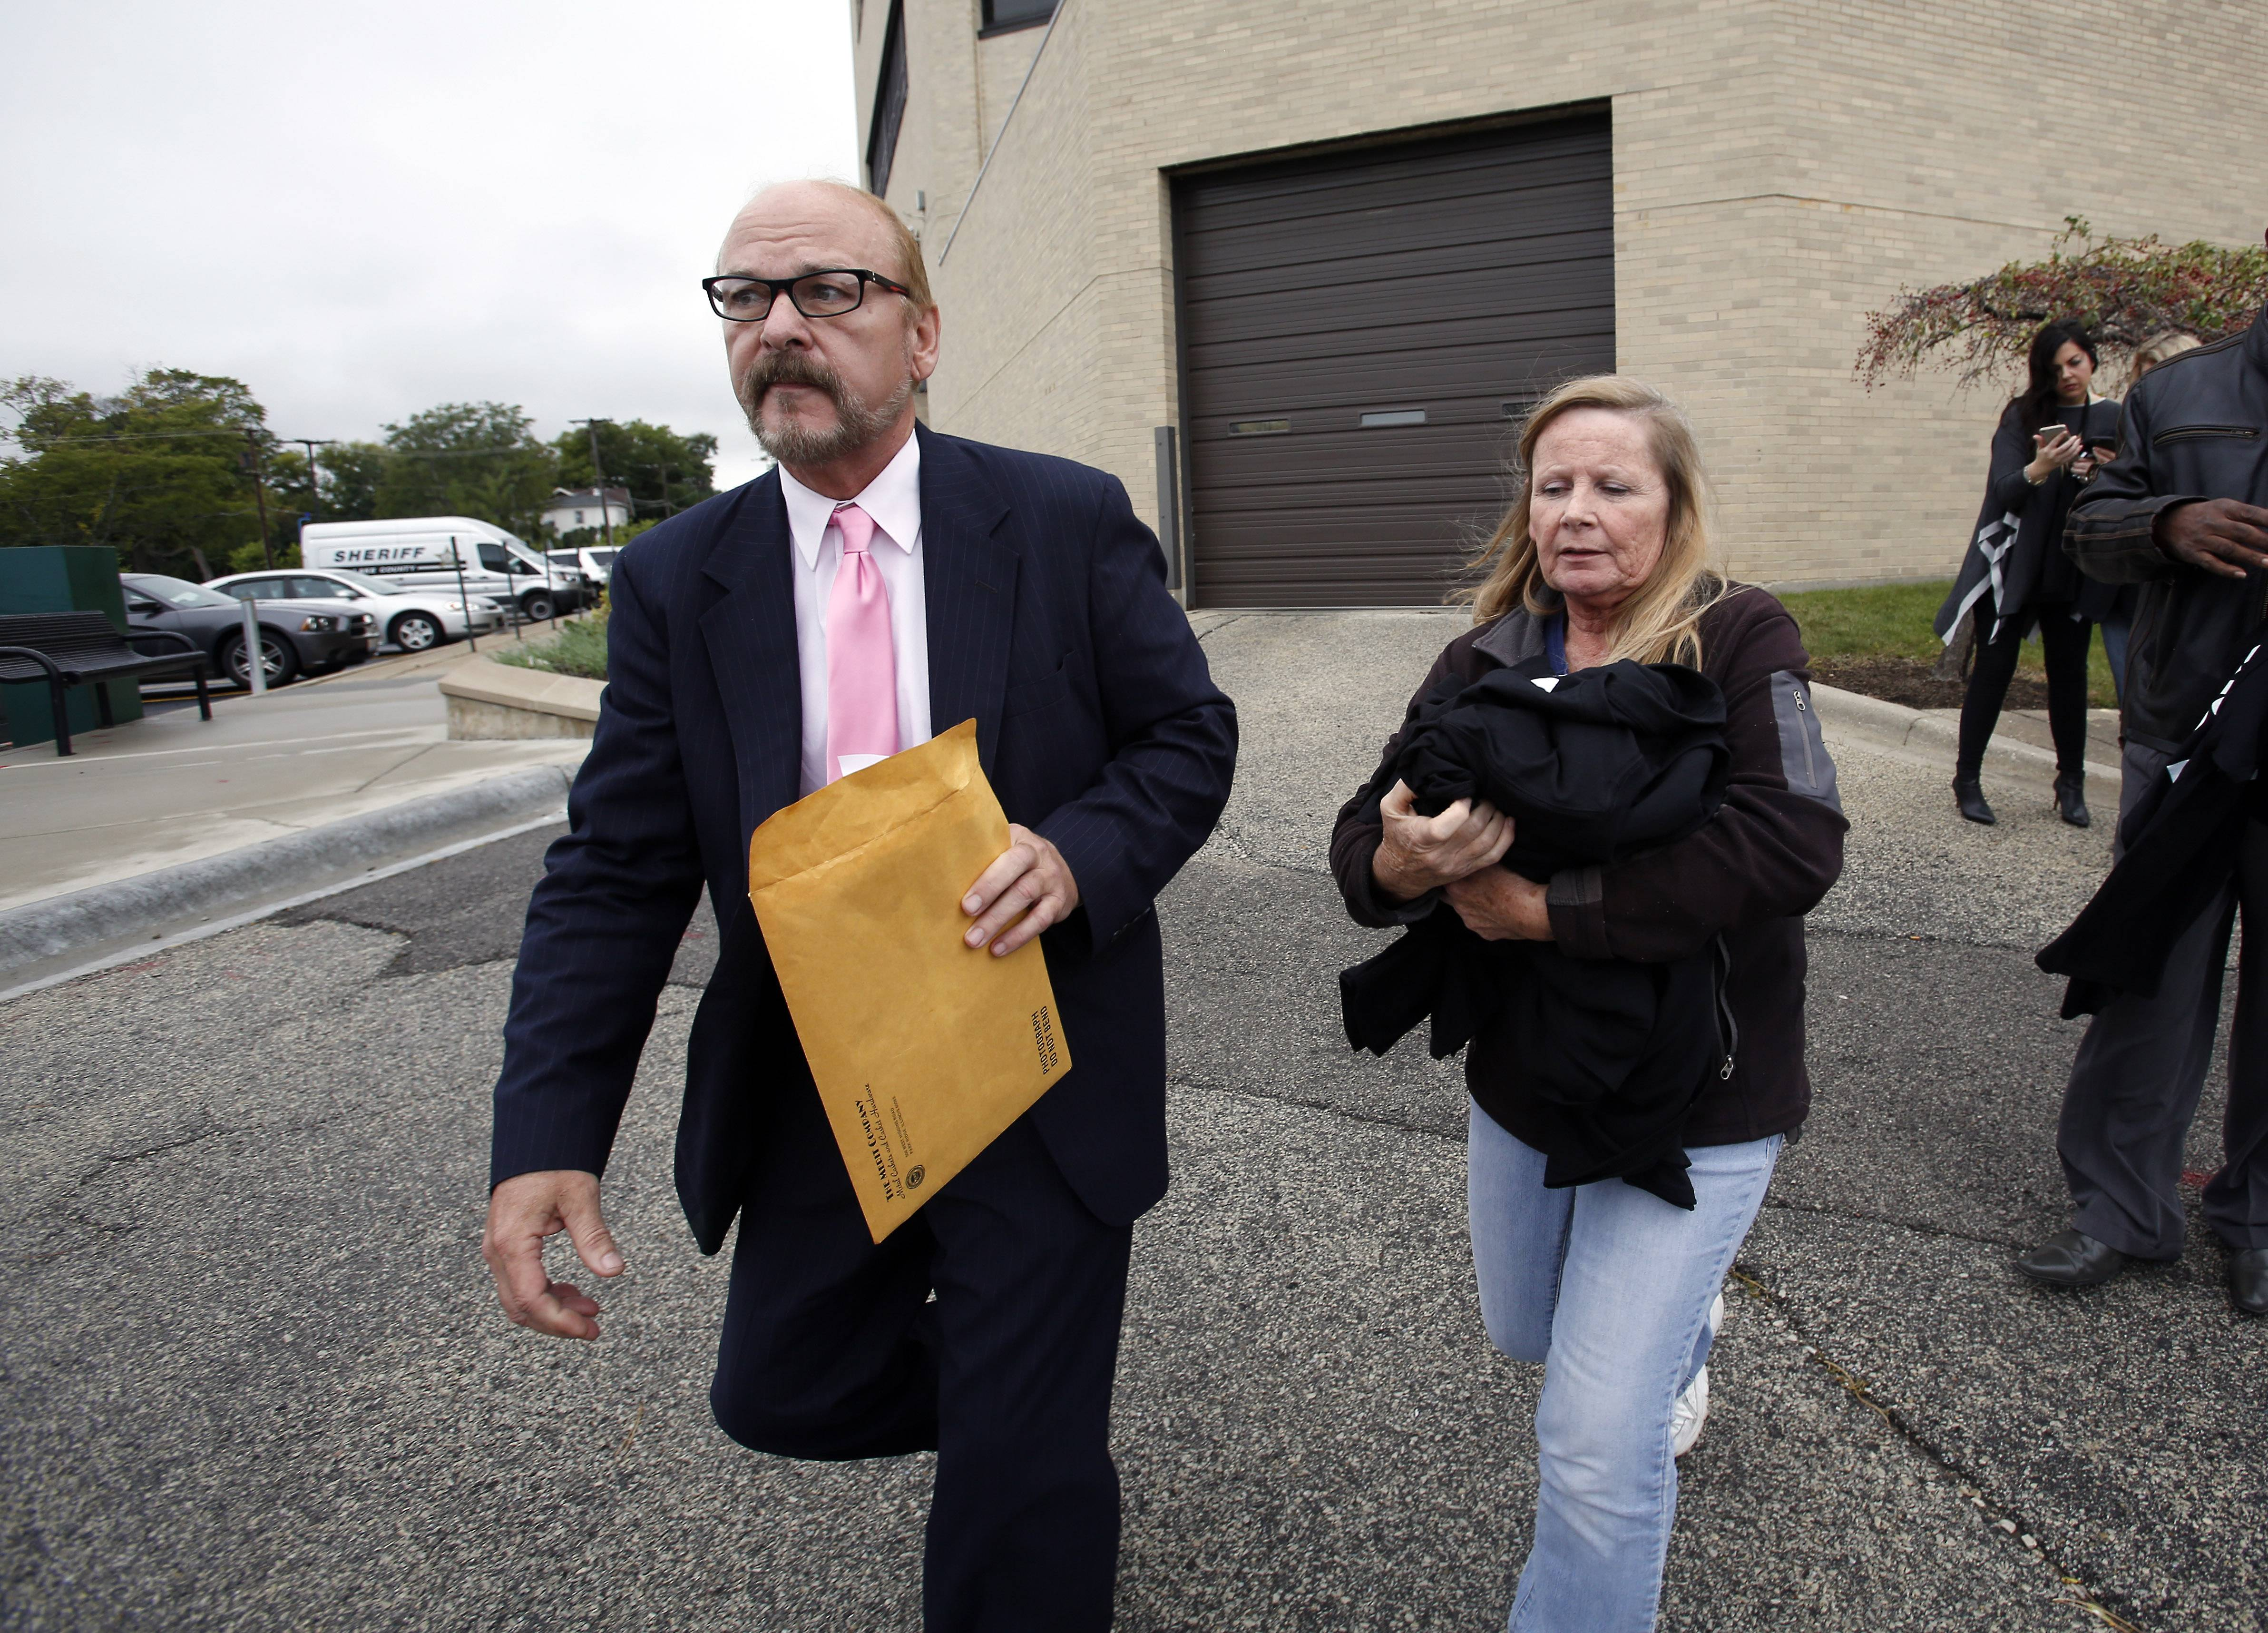 Paul and Cheryl Calusinski leave Lake County court after a judge refused to grant a new trial for their daughter Melissa Calusinski.